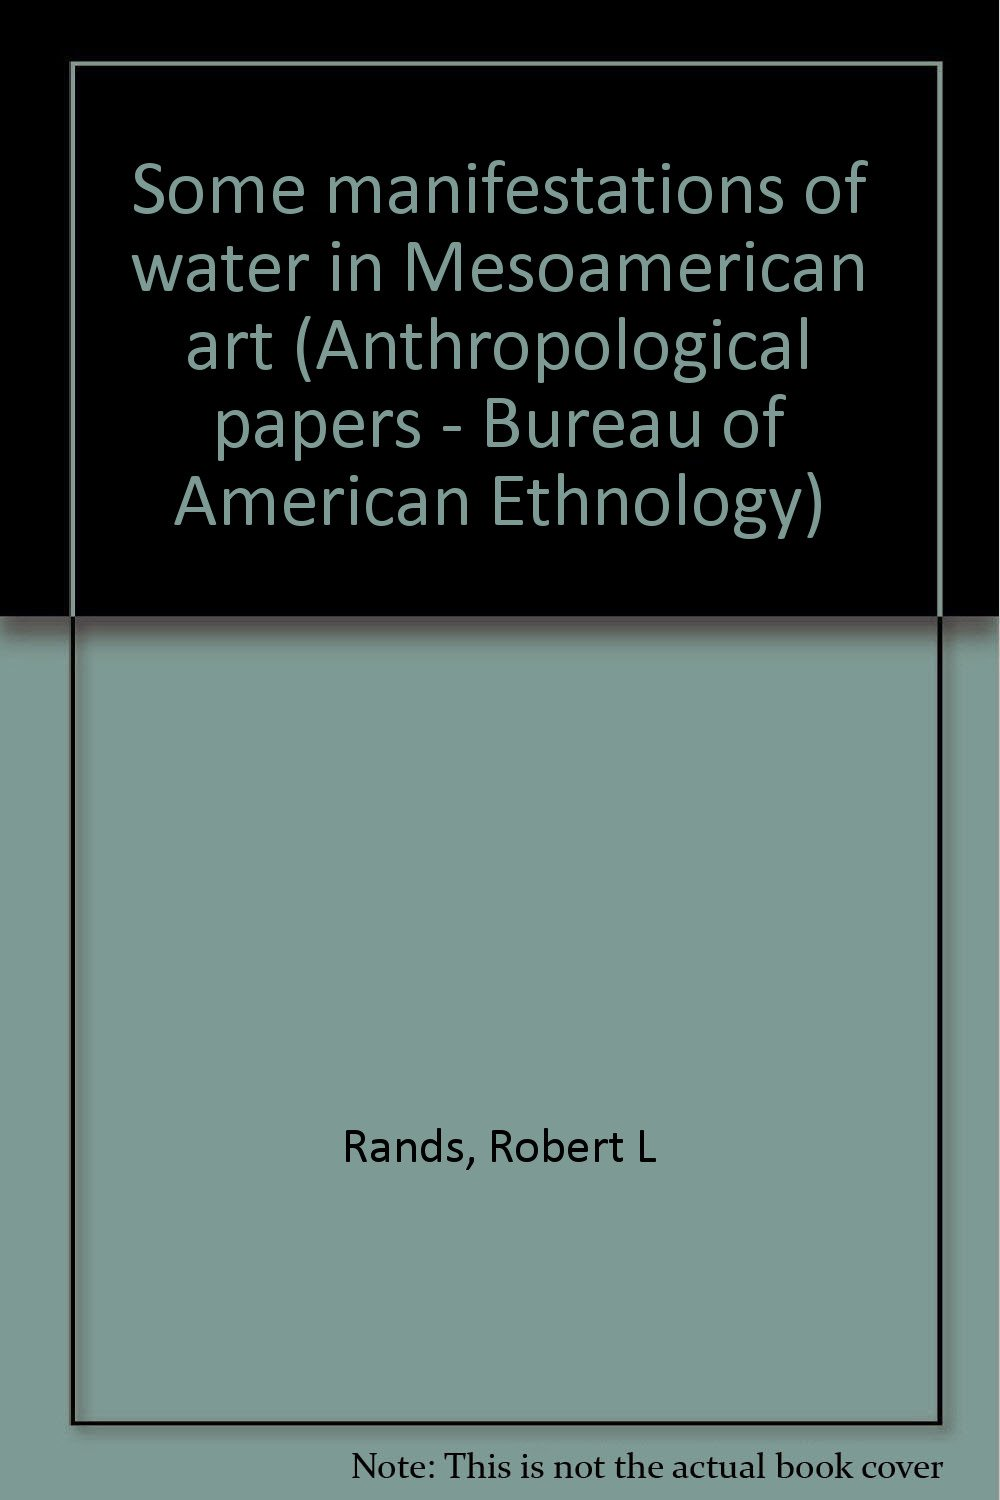 Some manifestations of water in Mesoamerican art (Anthropological papers - Bureau of American Ethnology)